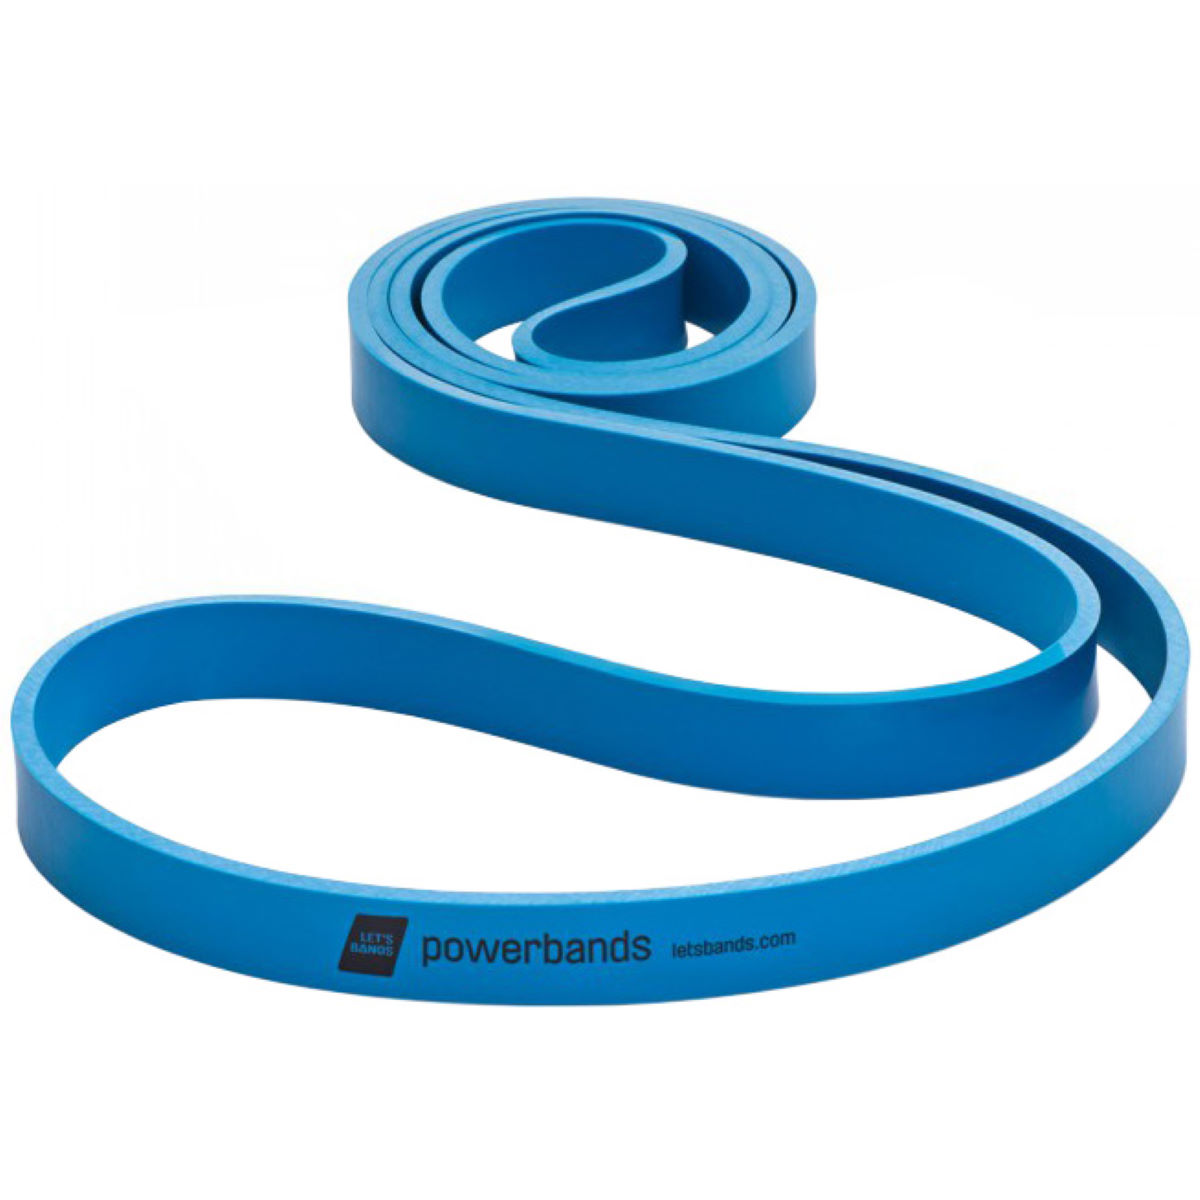 Lets Bands Powerband Max Heavy - Blue - Blue 100 x 2 cm